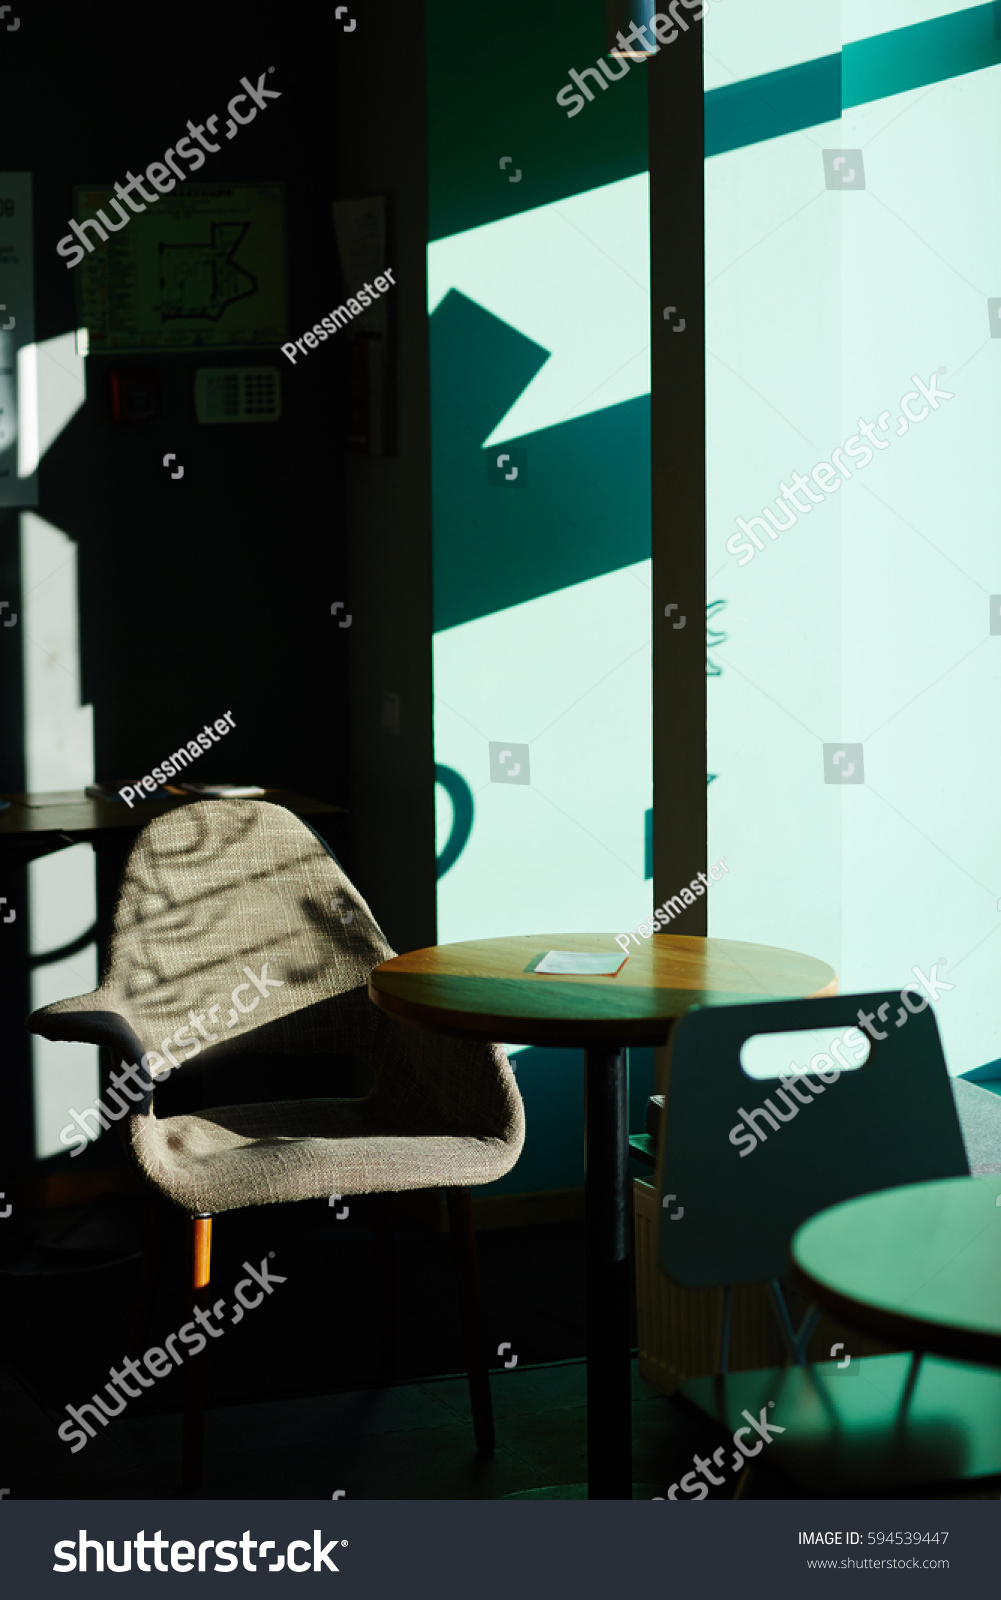 Image Empty Seating Area Cafe Table Stock Photo Royalty Free - Standing cafe table